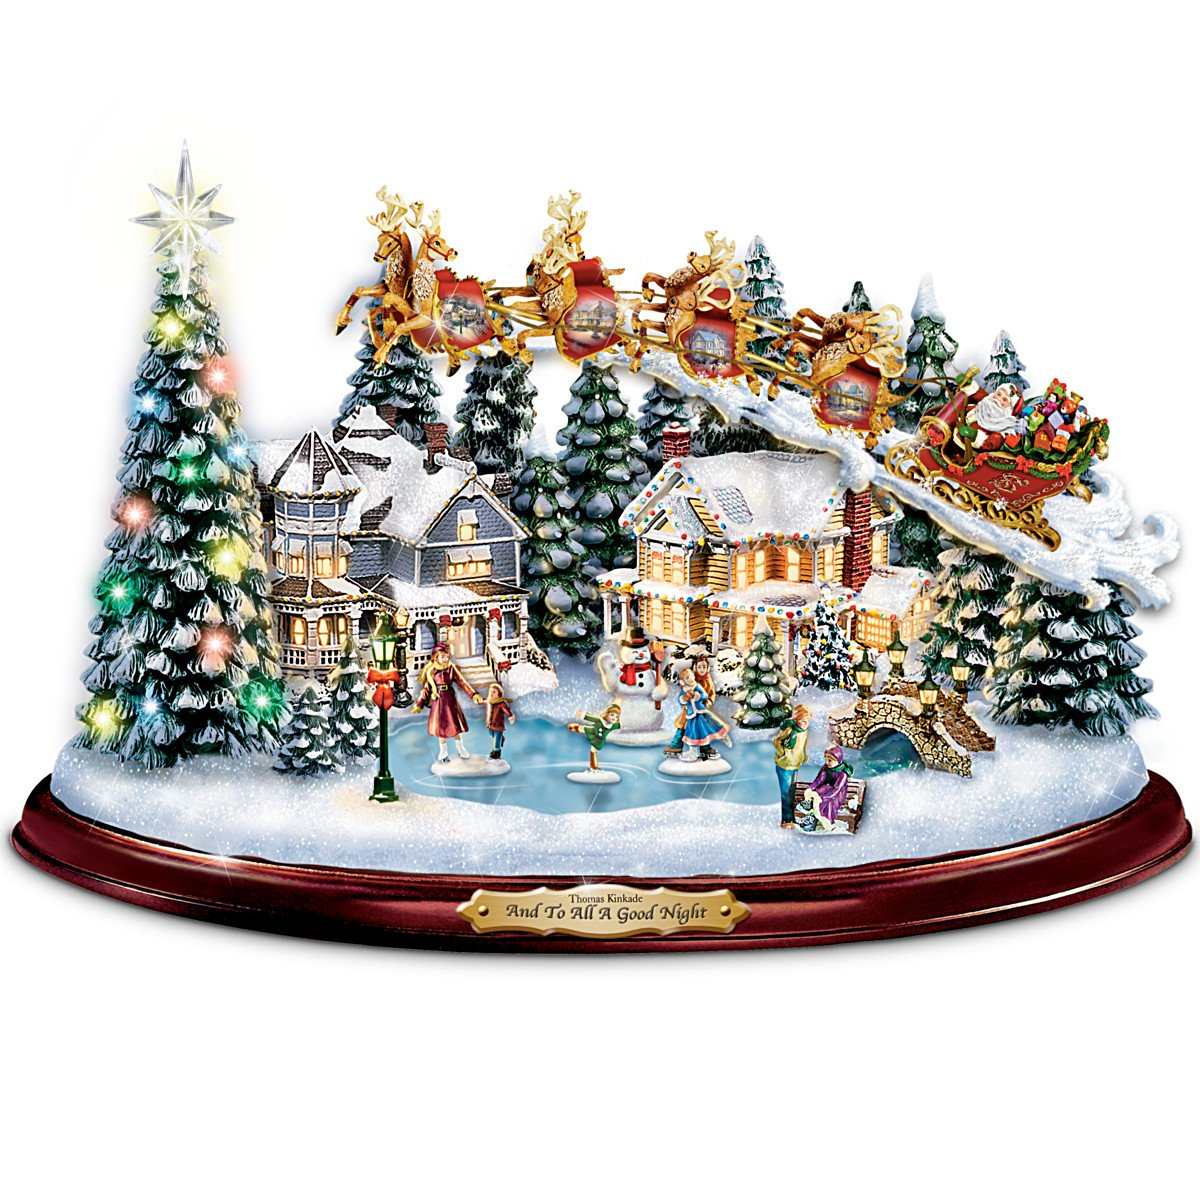 Buy Thomas Kinkade And To All A Good Night Christmas Sculpture by ...